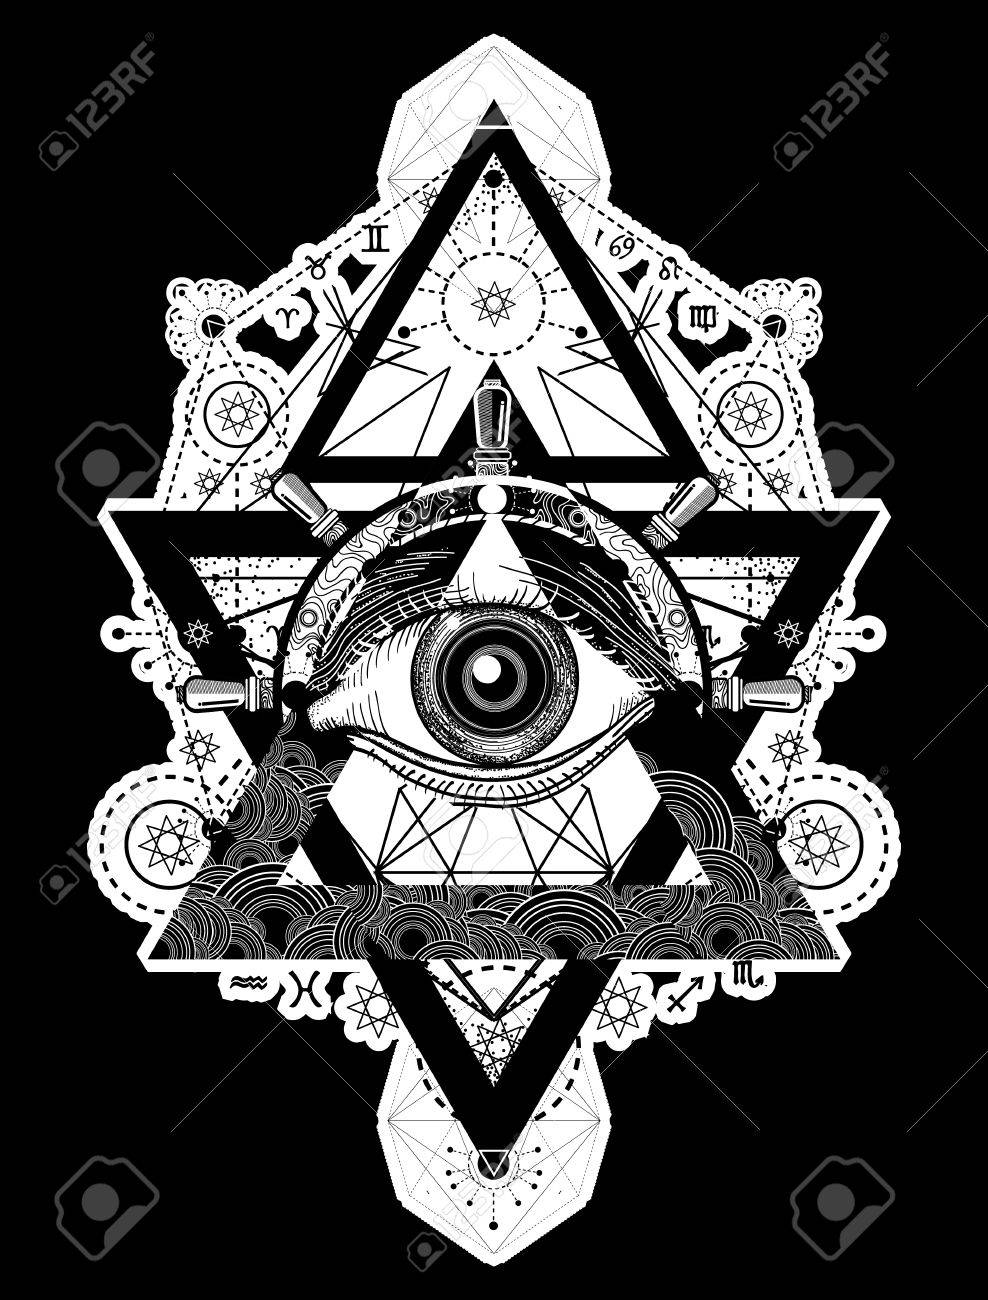 All seeing eye tattoo art vector. Freemason and spiritual symbols. Alchemy, medieval religion, occultism, spirituality and esoteric tattoo. Magic eye, compass and steering wheel t-shirt design - 73946144